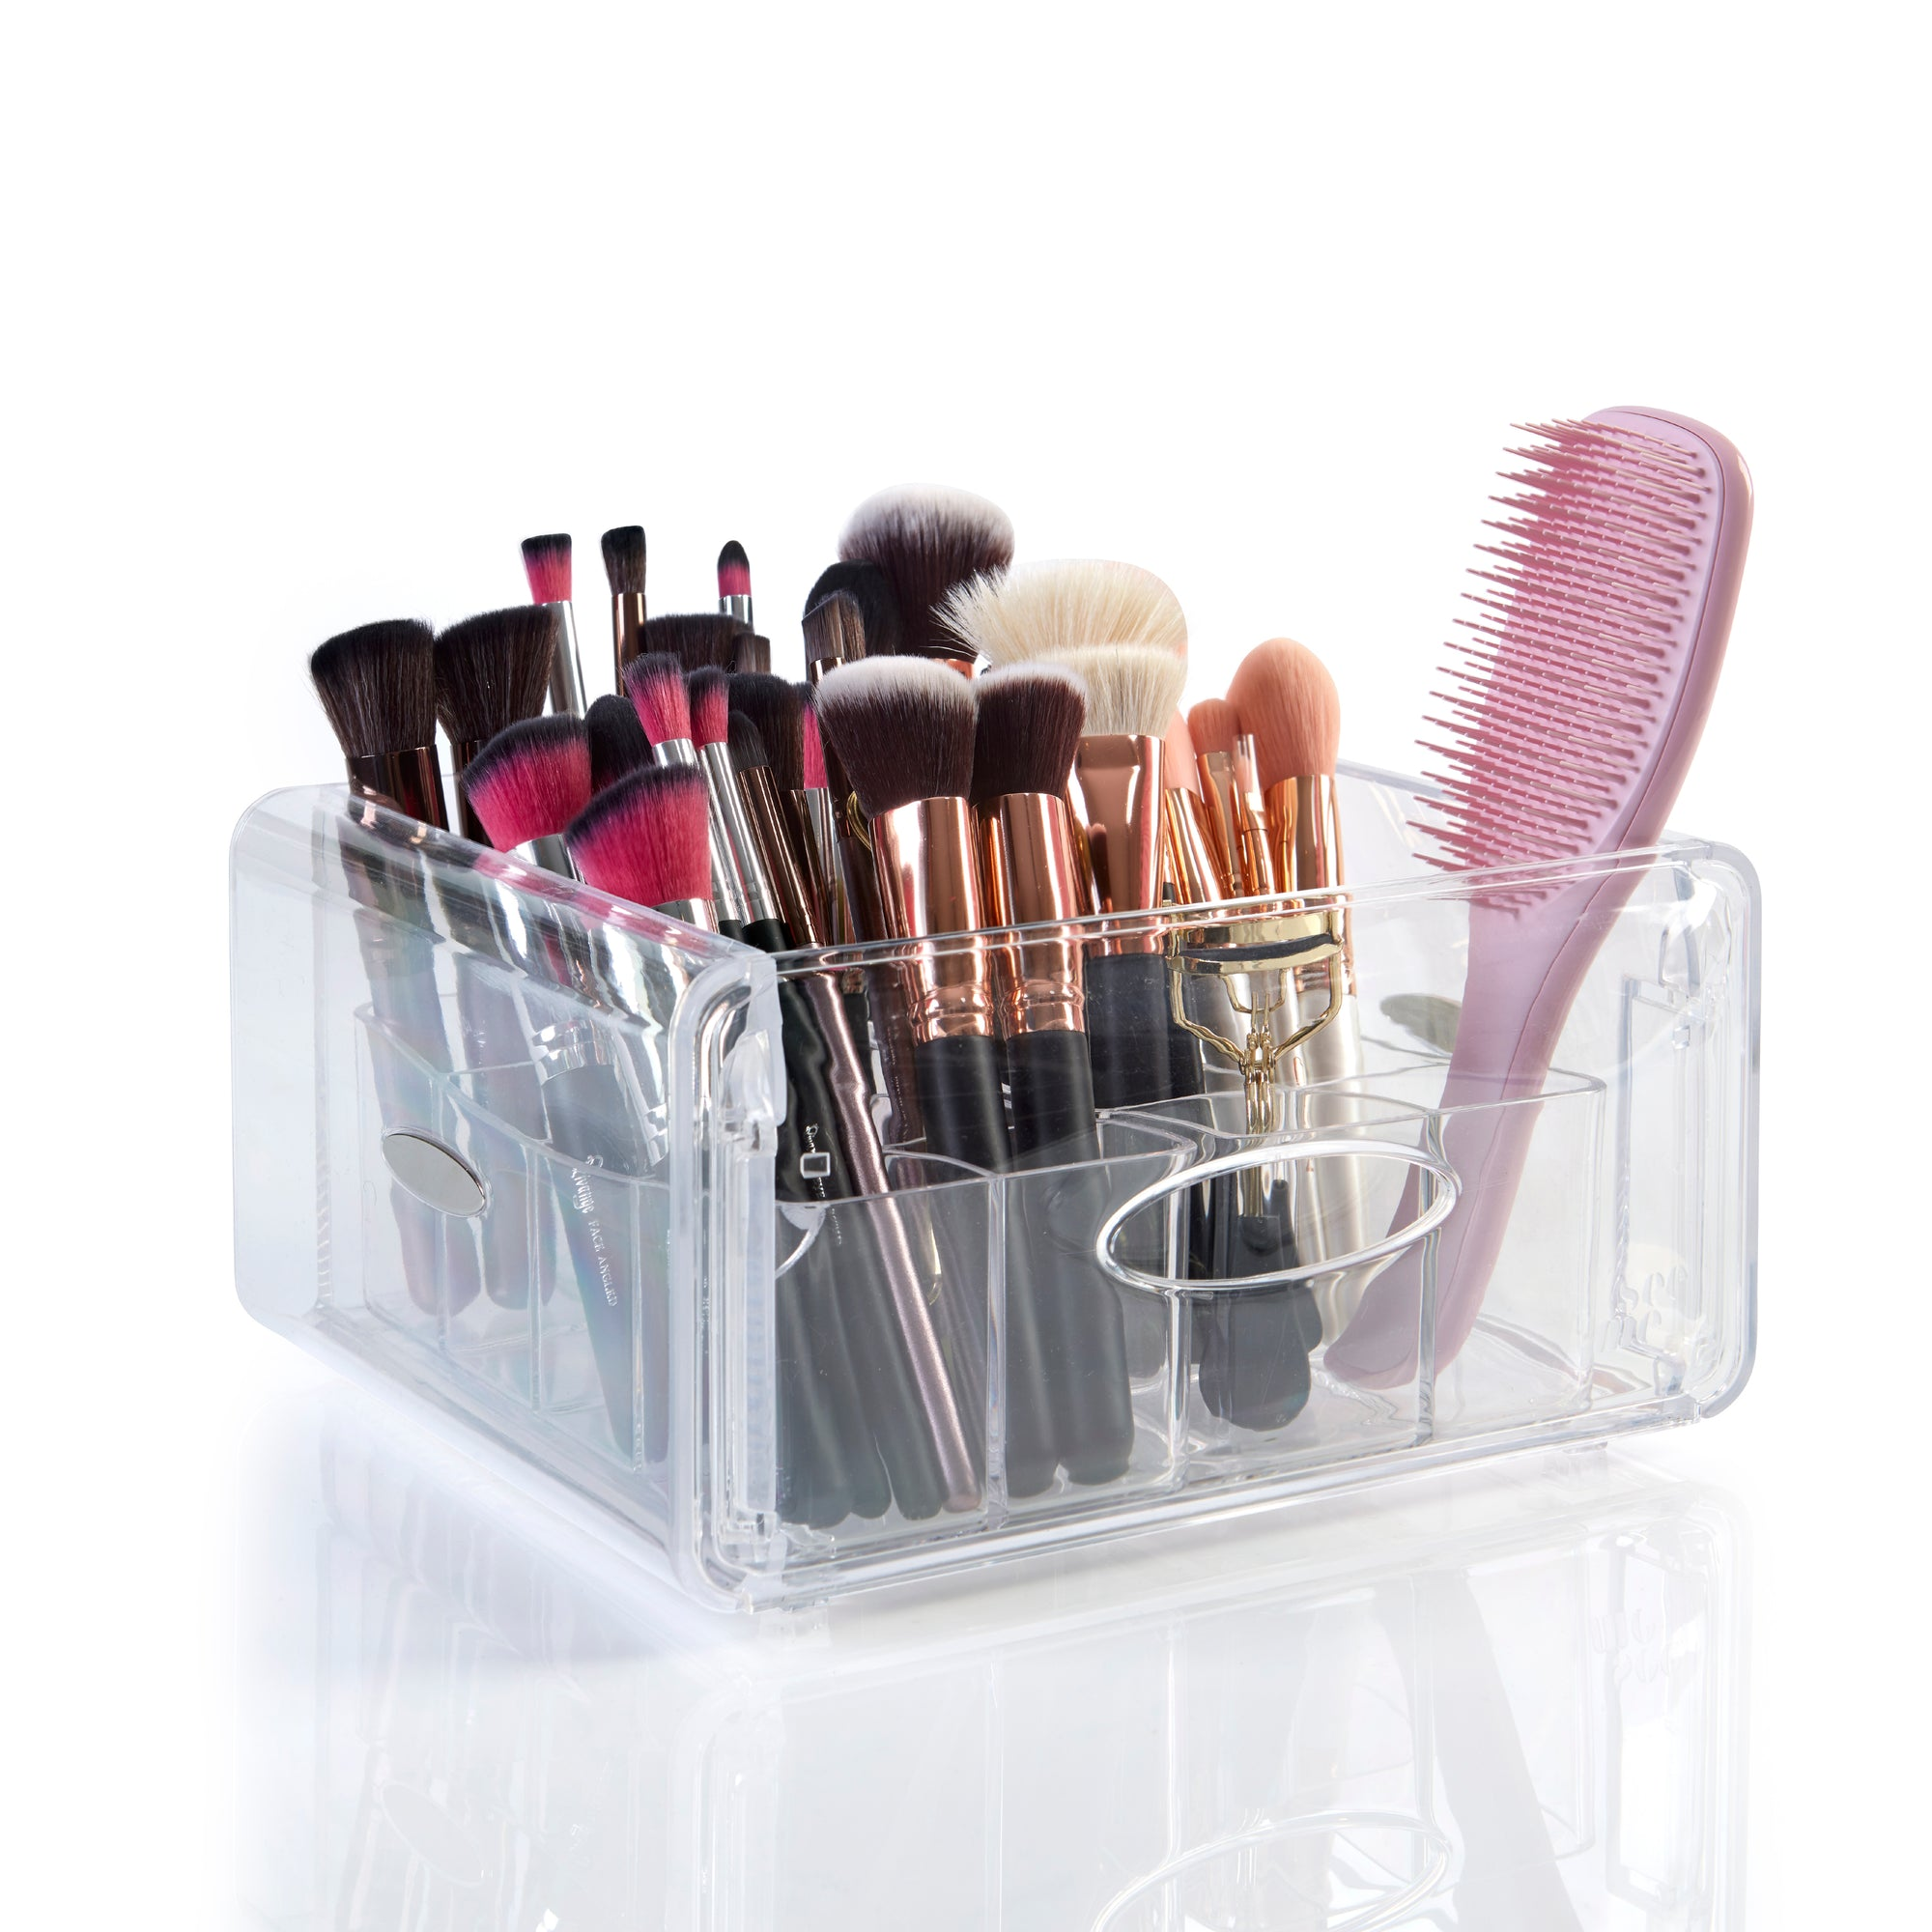 SEE ME ECLIPSE :: MAKEUP BRUSHES & TOOLS ORGANISER